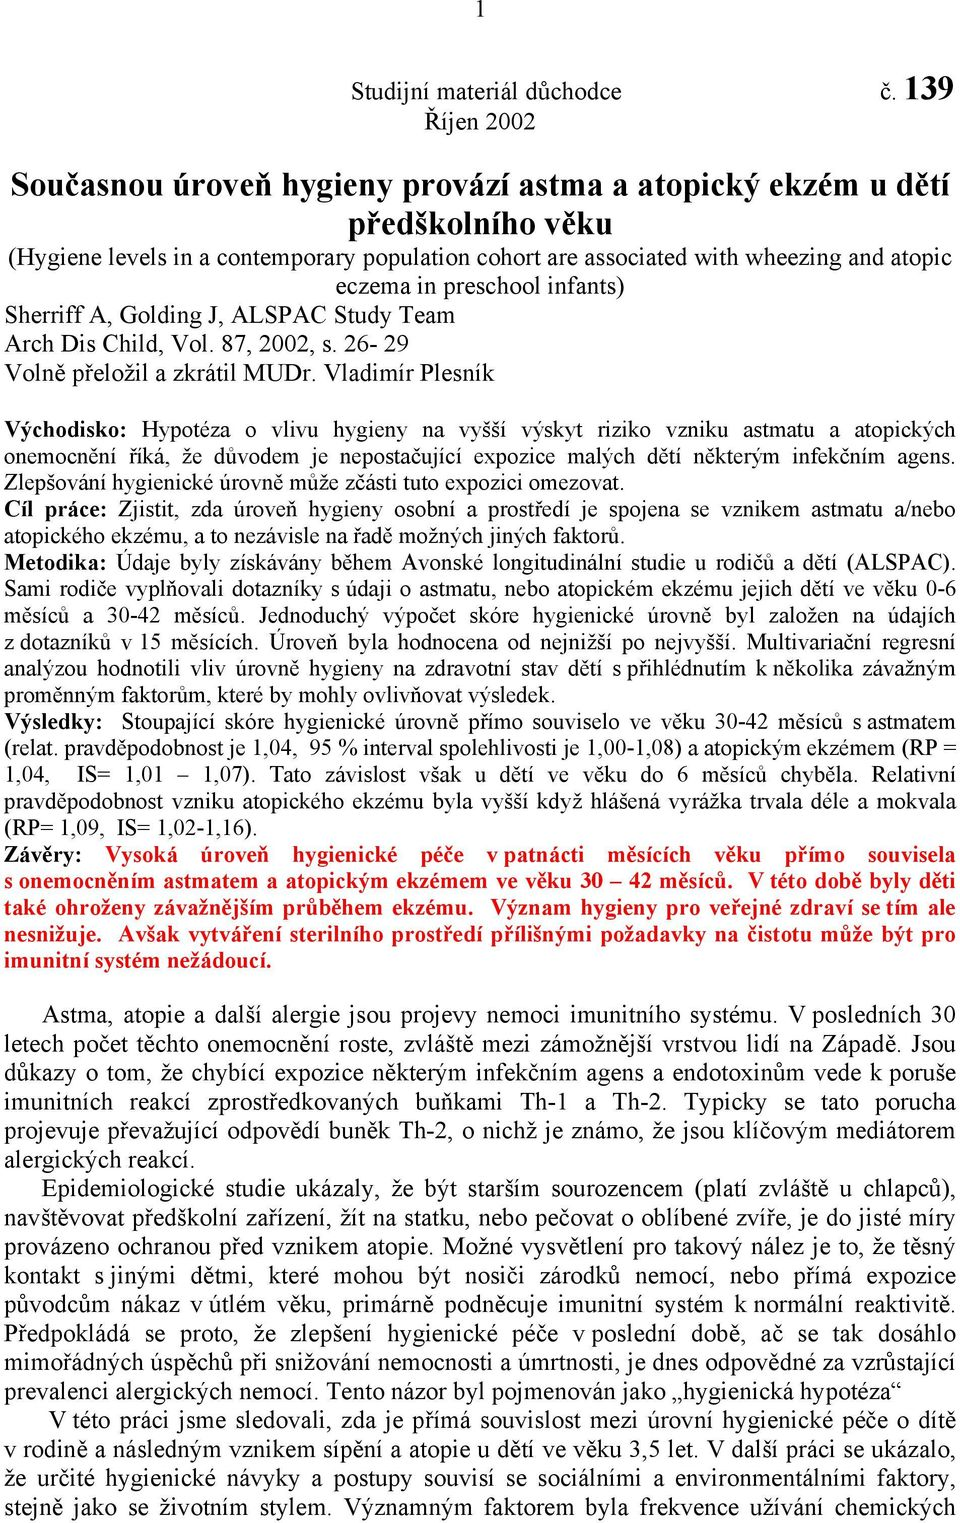 preschool infants) Sherriff A, Golding J, ALSPAC Study Team Arch Dis Child, Vol. 87, 2002, s. 26-29 Volně přeložil a zkrátil MUDr.